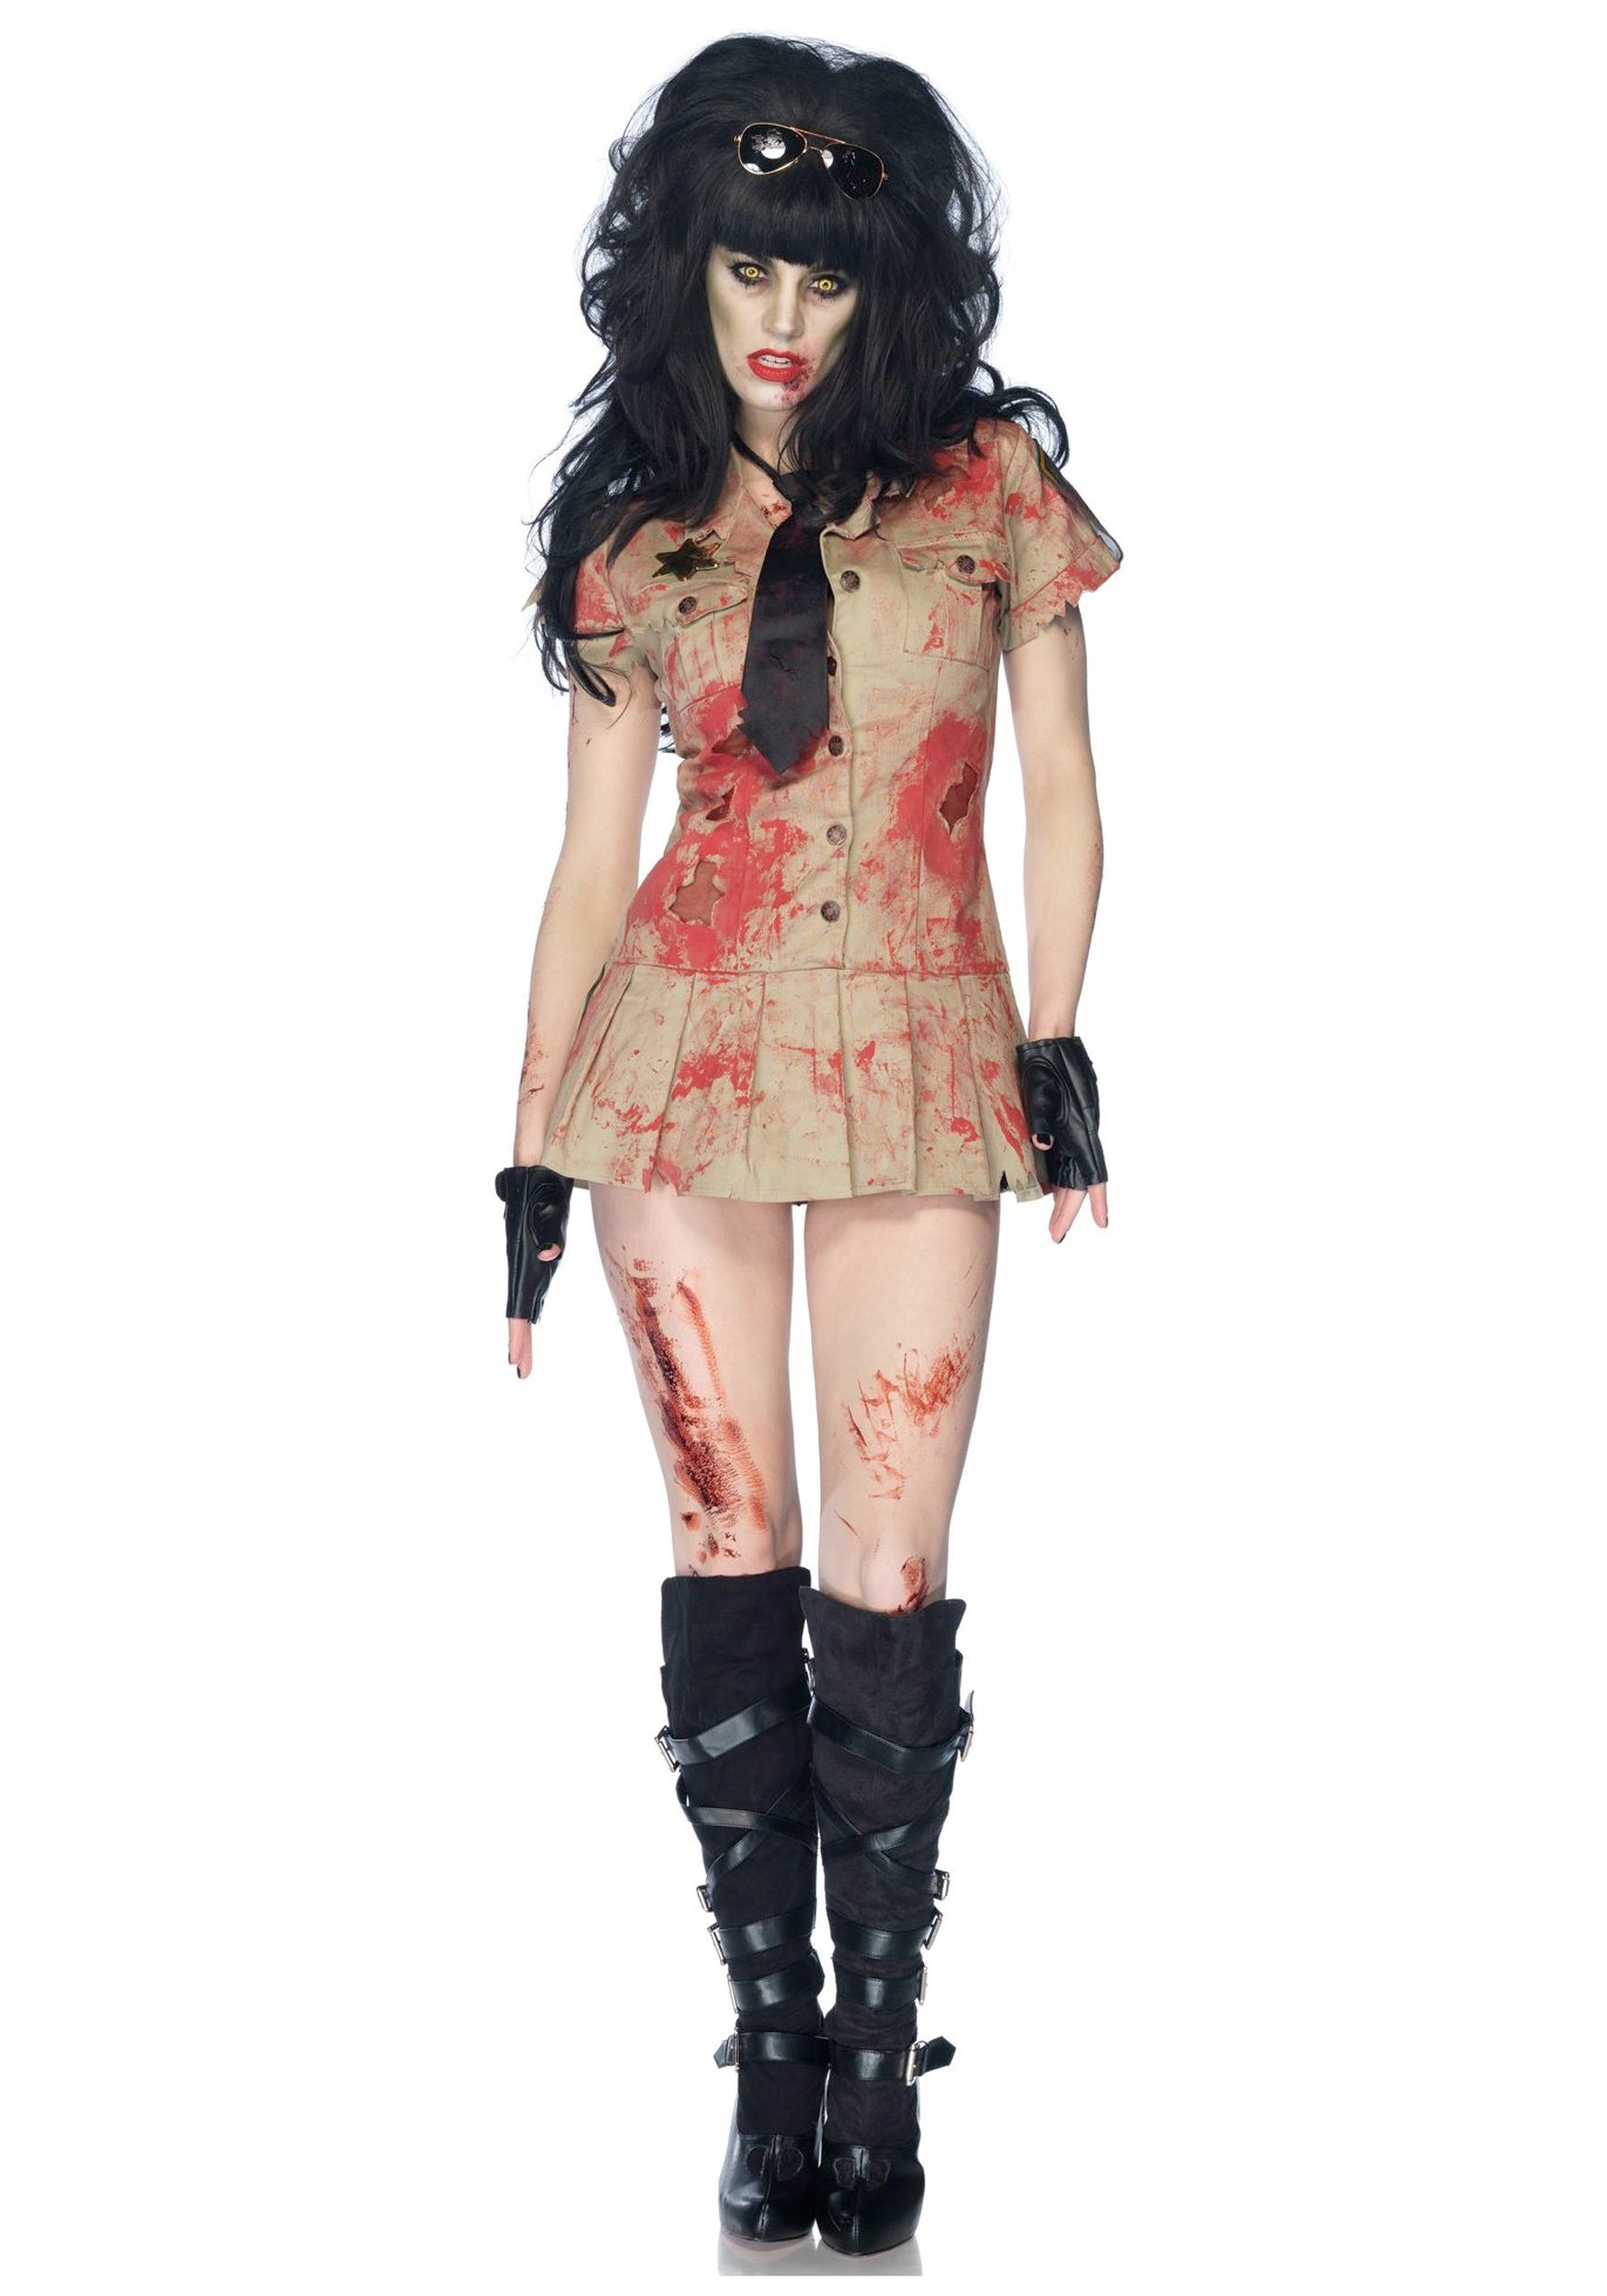 Scary Halloween Costumes for Women